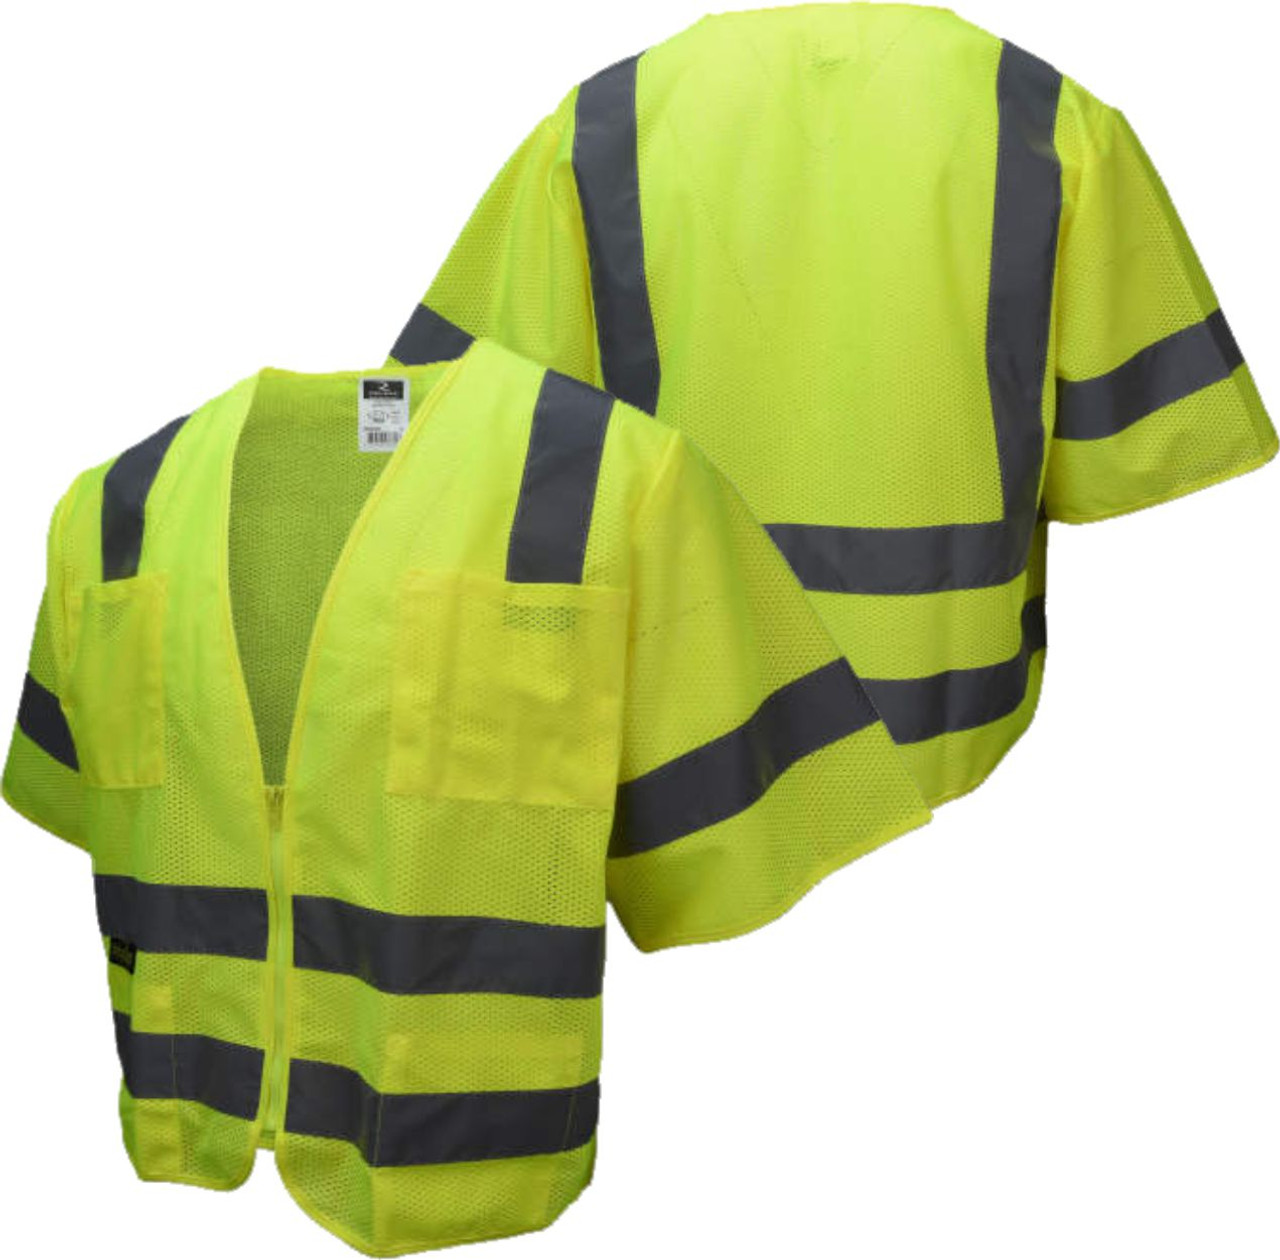 Standard ANSI Safety Green Class 3 Safety Vest with Zipper Closure and 6 Pockets